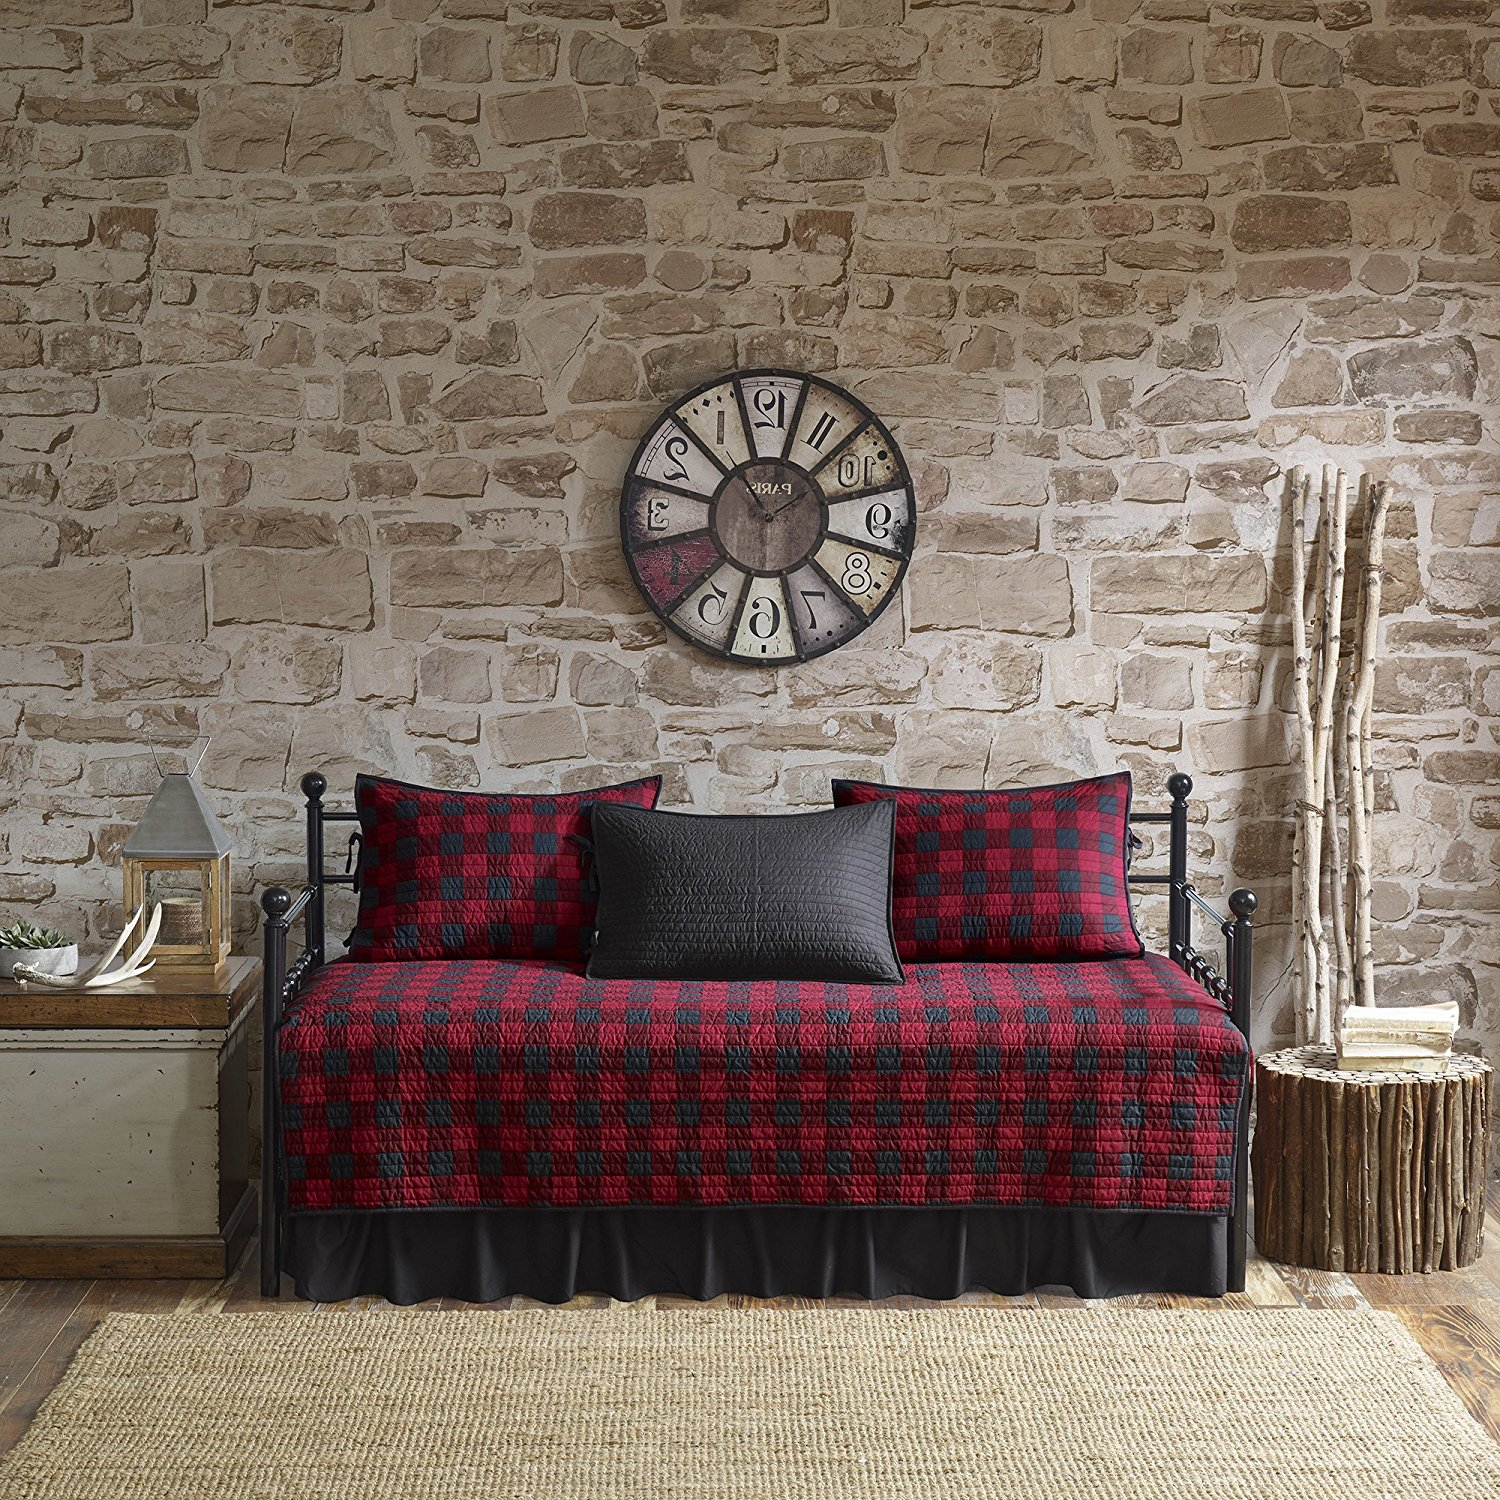 5 Piece Red Black Plaid Daybed Cover Set, Geometric Square Rugby Stripe Checkered Cabin Lodge Theme Checked Pattern Day Bed Bedskirt Pillows, Polyester